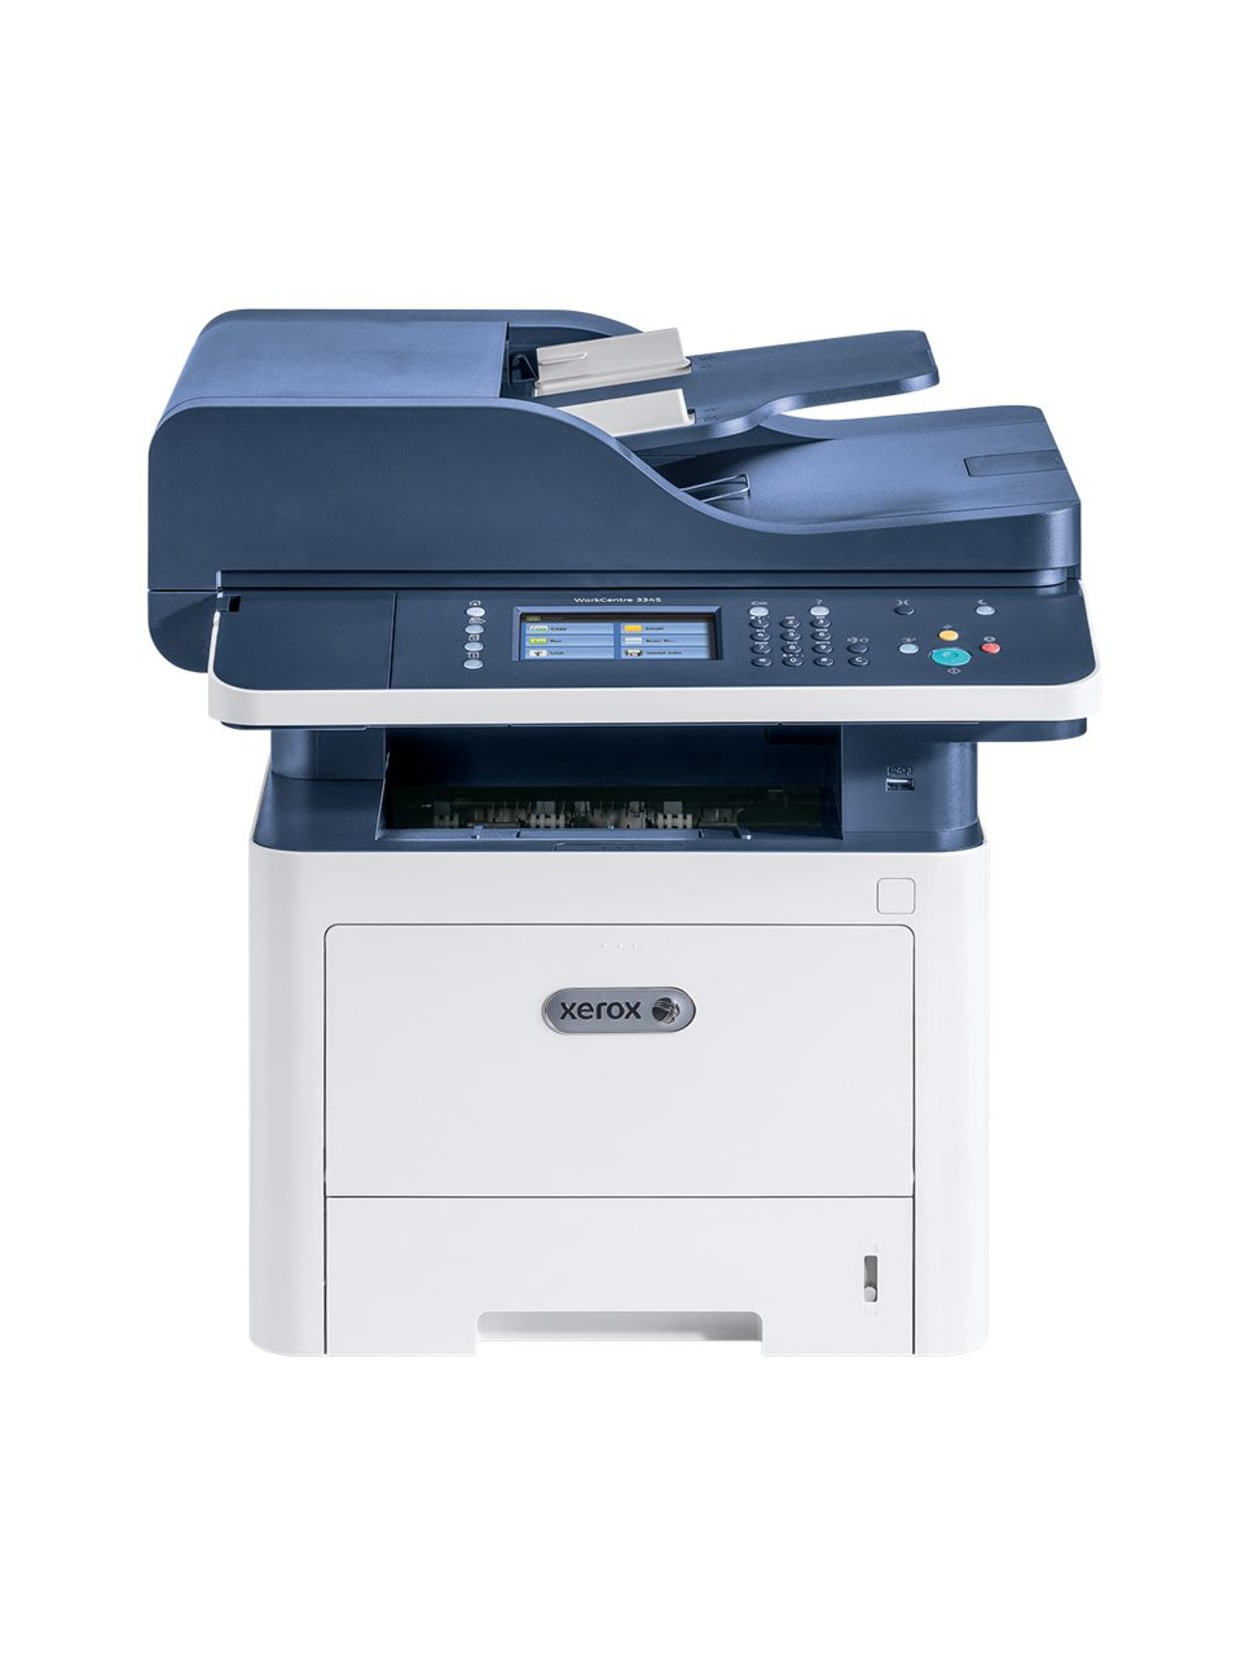 Xerox Workcentre 3300 Series Wireless Monochrome Laser All In One Printer 3345dni Office Depot